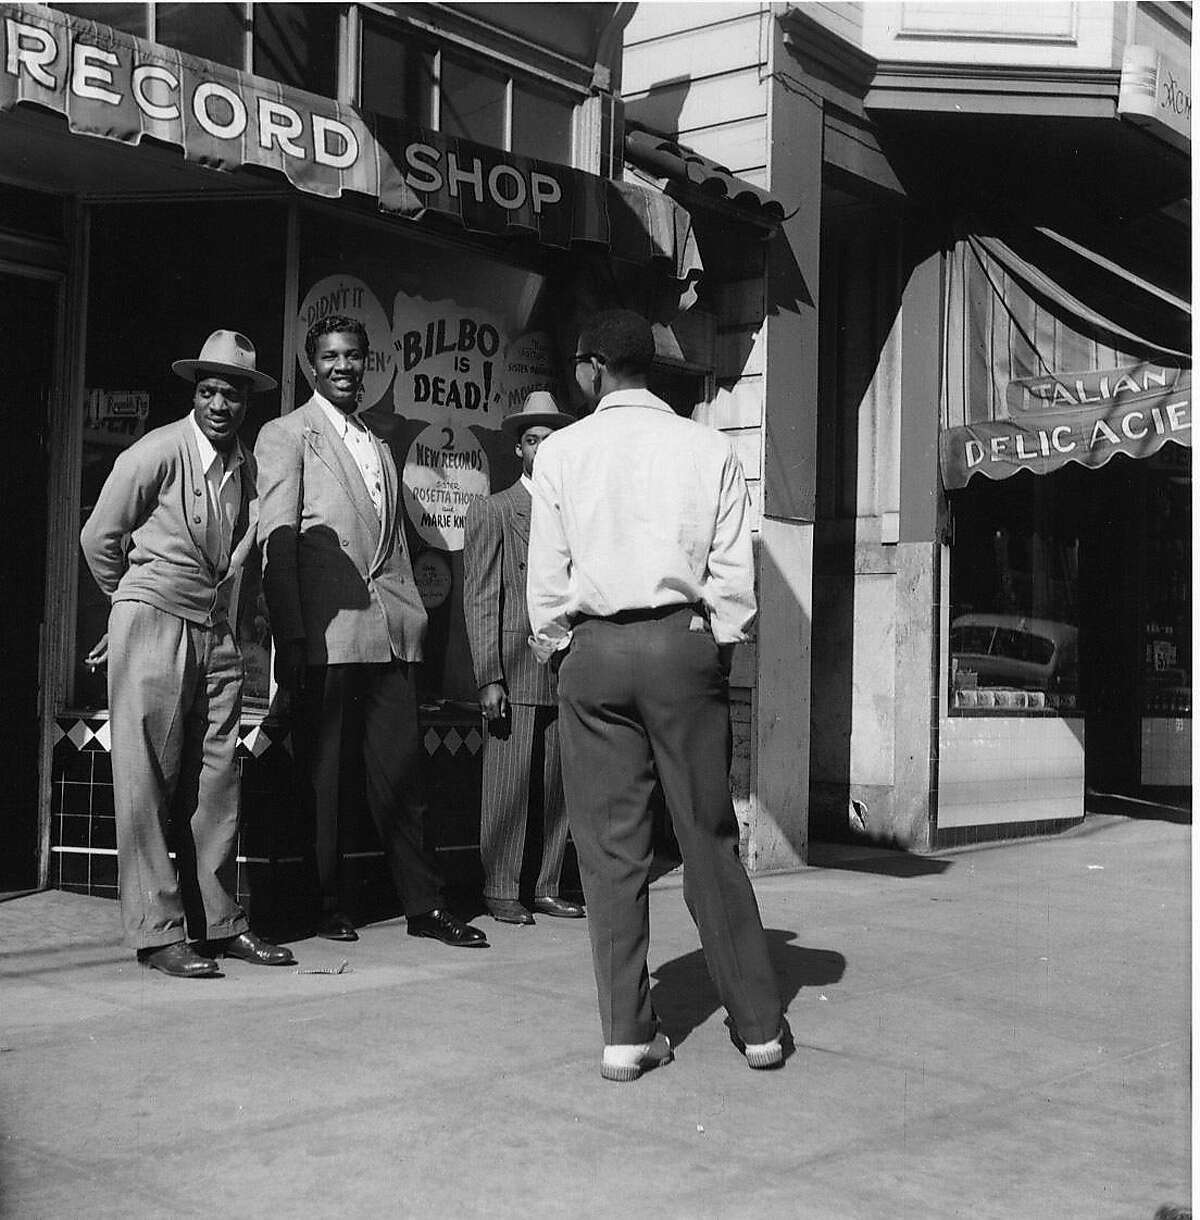 """During the musical heyday of San Francisco�s Fillmore District in the 1940�s and 1950�s, the area was known as the """"Harlem of the West."""" People wanted to forget the war by being entertained and a network of musicians, ands, clubs, and bars filled the need. Left to right are John Handy, Pony Poindexter, John Coltrane, and Franck Fisher. Photo credit: Steve Jackson Photo D The Western Addition was one of San Francisco�s most thriving shopping and entertainment areas.It was vibrant with hope and economic vitality. But as the shipyards closed African Americas were finding it difficult to compete for jobs with returning soldiers. Racial discrimination mounted, and unemployment in the neighborhood grew. Photo credit: David Johnson NOTE: it's unclear which caption goes w/this photo tho the first seems most logical. HANDOUT"""